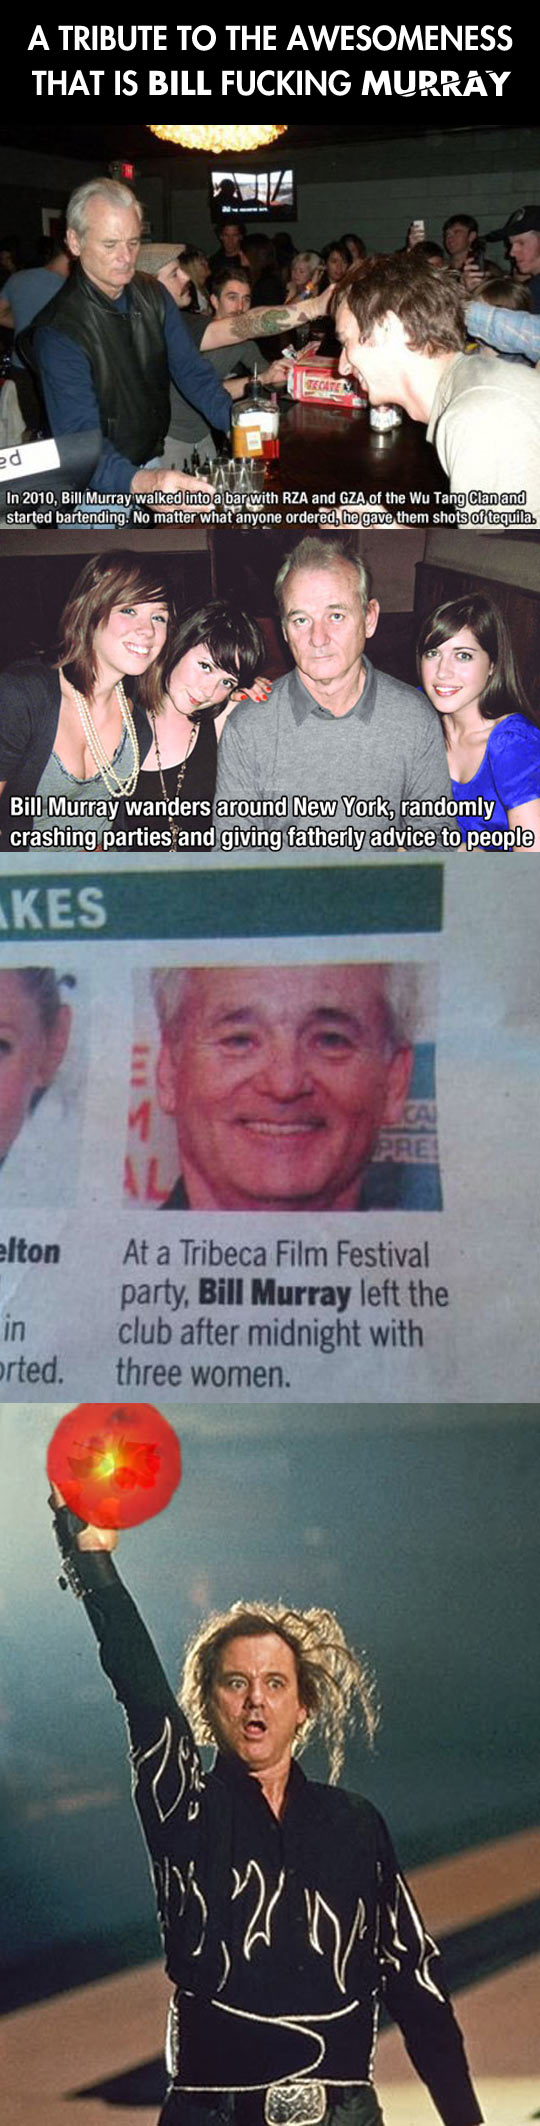 funny-Bill-Murray-images-tribute